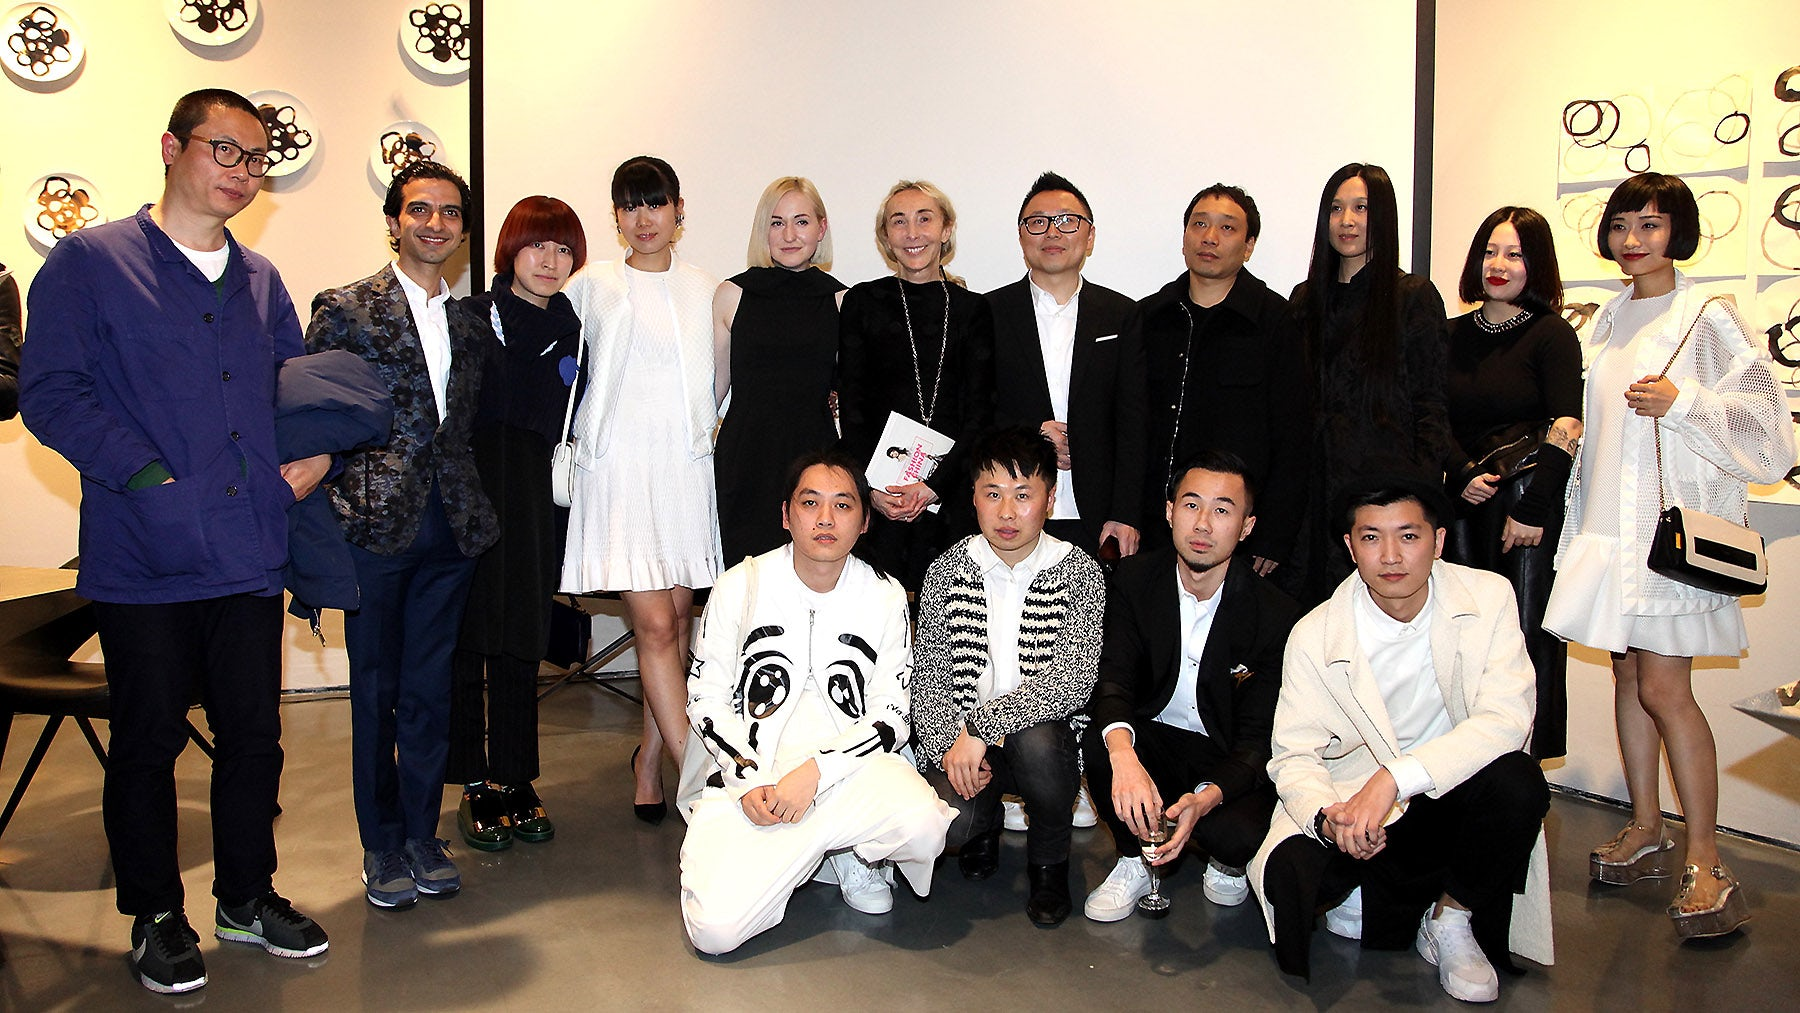 At the 'Fashion China' book event at 10 Corso Como, Shanghai | Source: 10 Corso Como